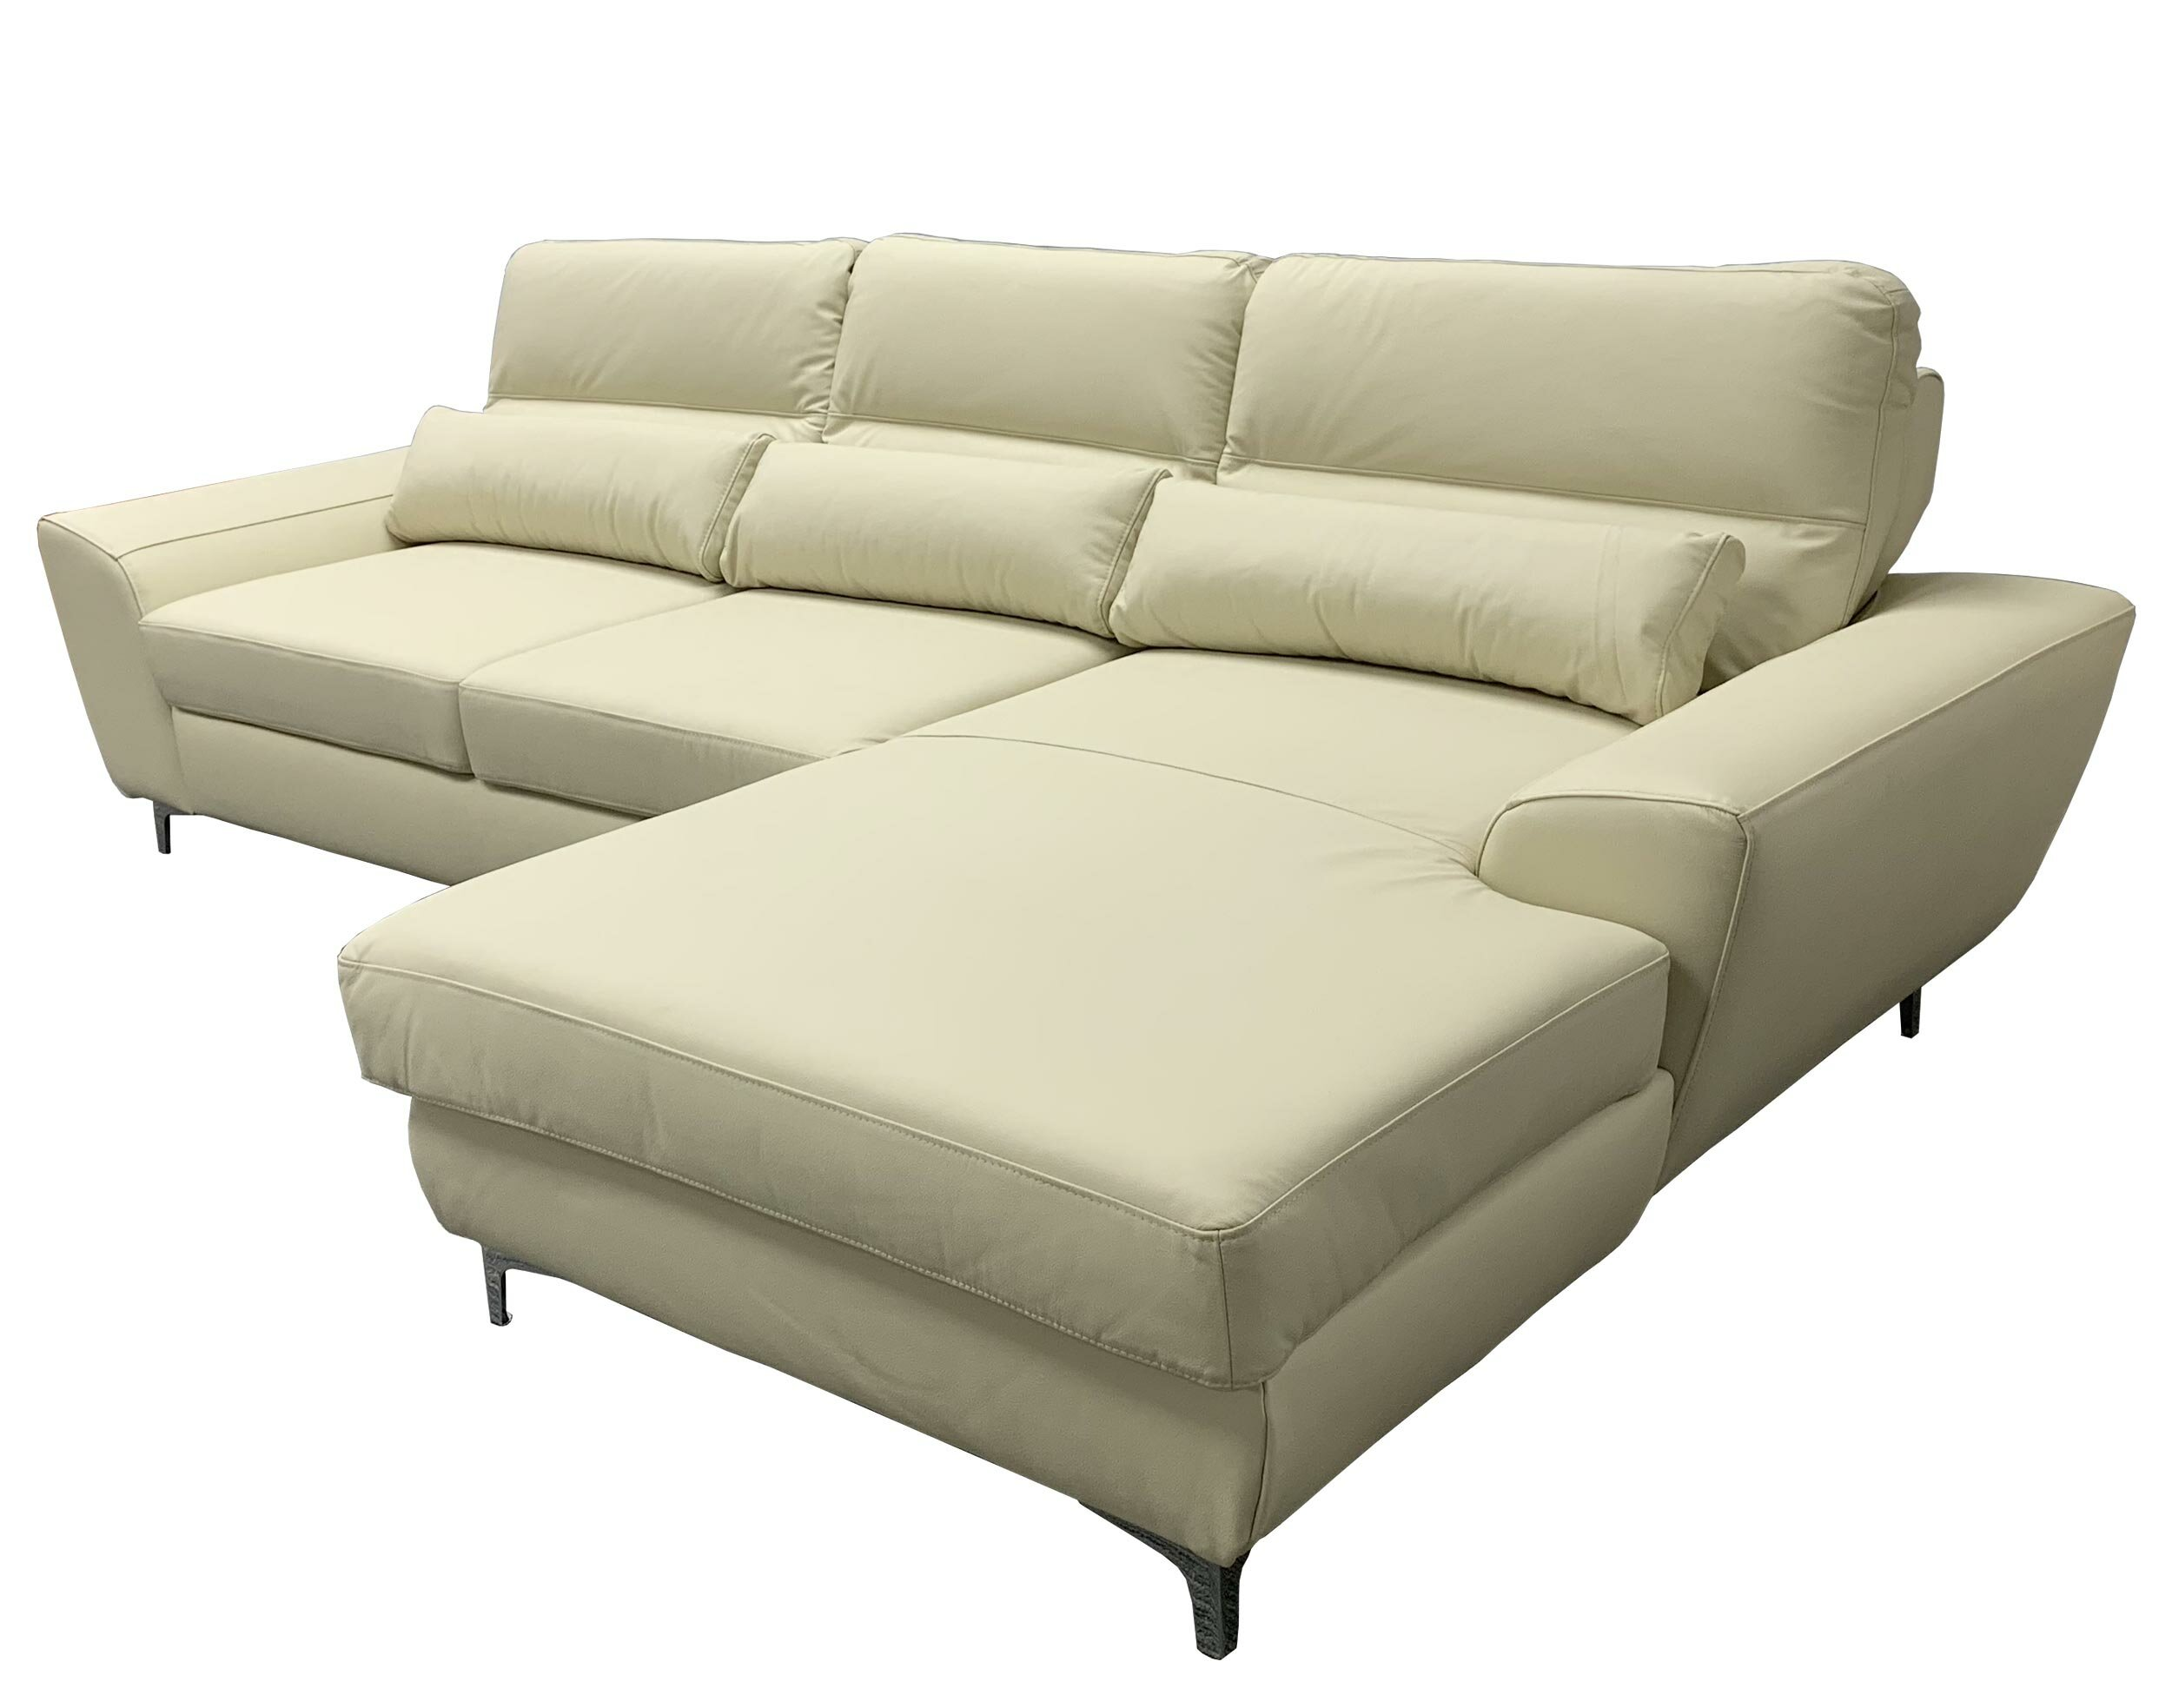 Warlo Right Hand Facing Leather Sleeper Sectional